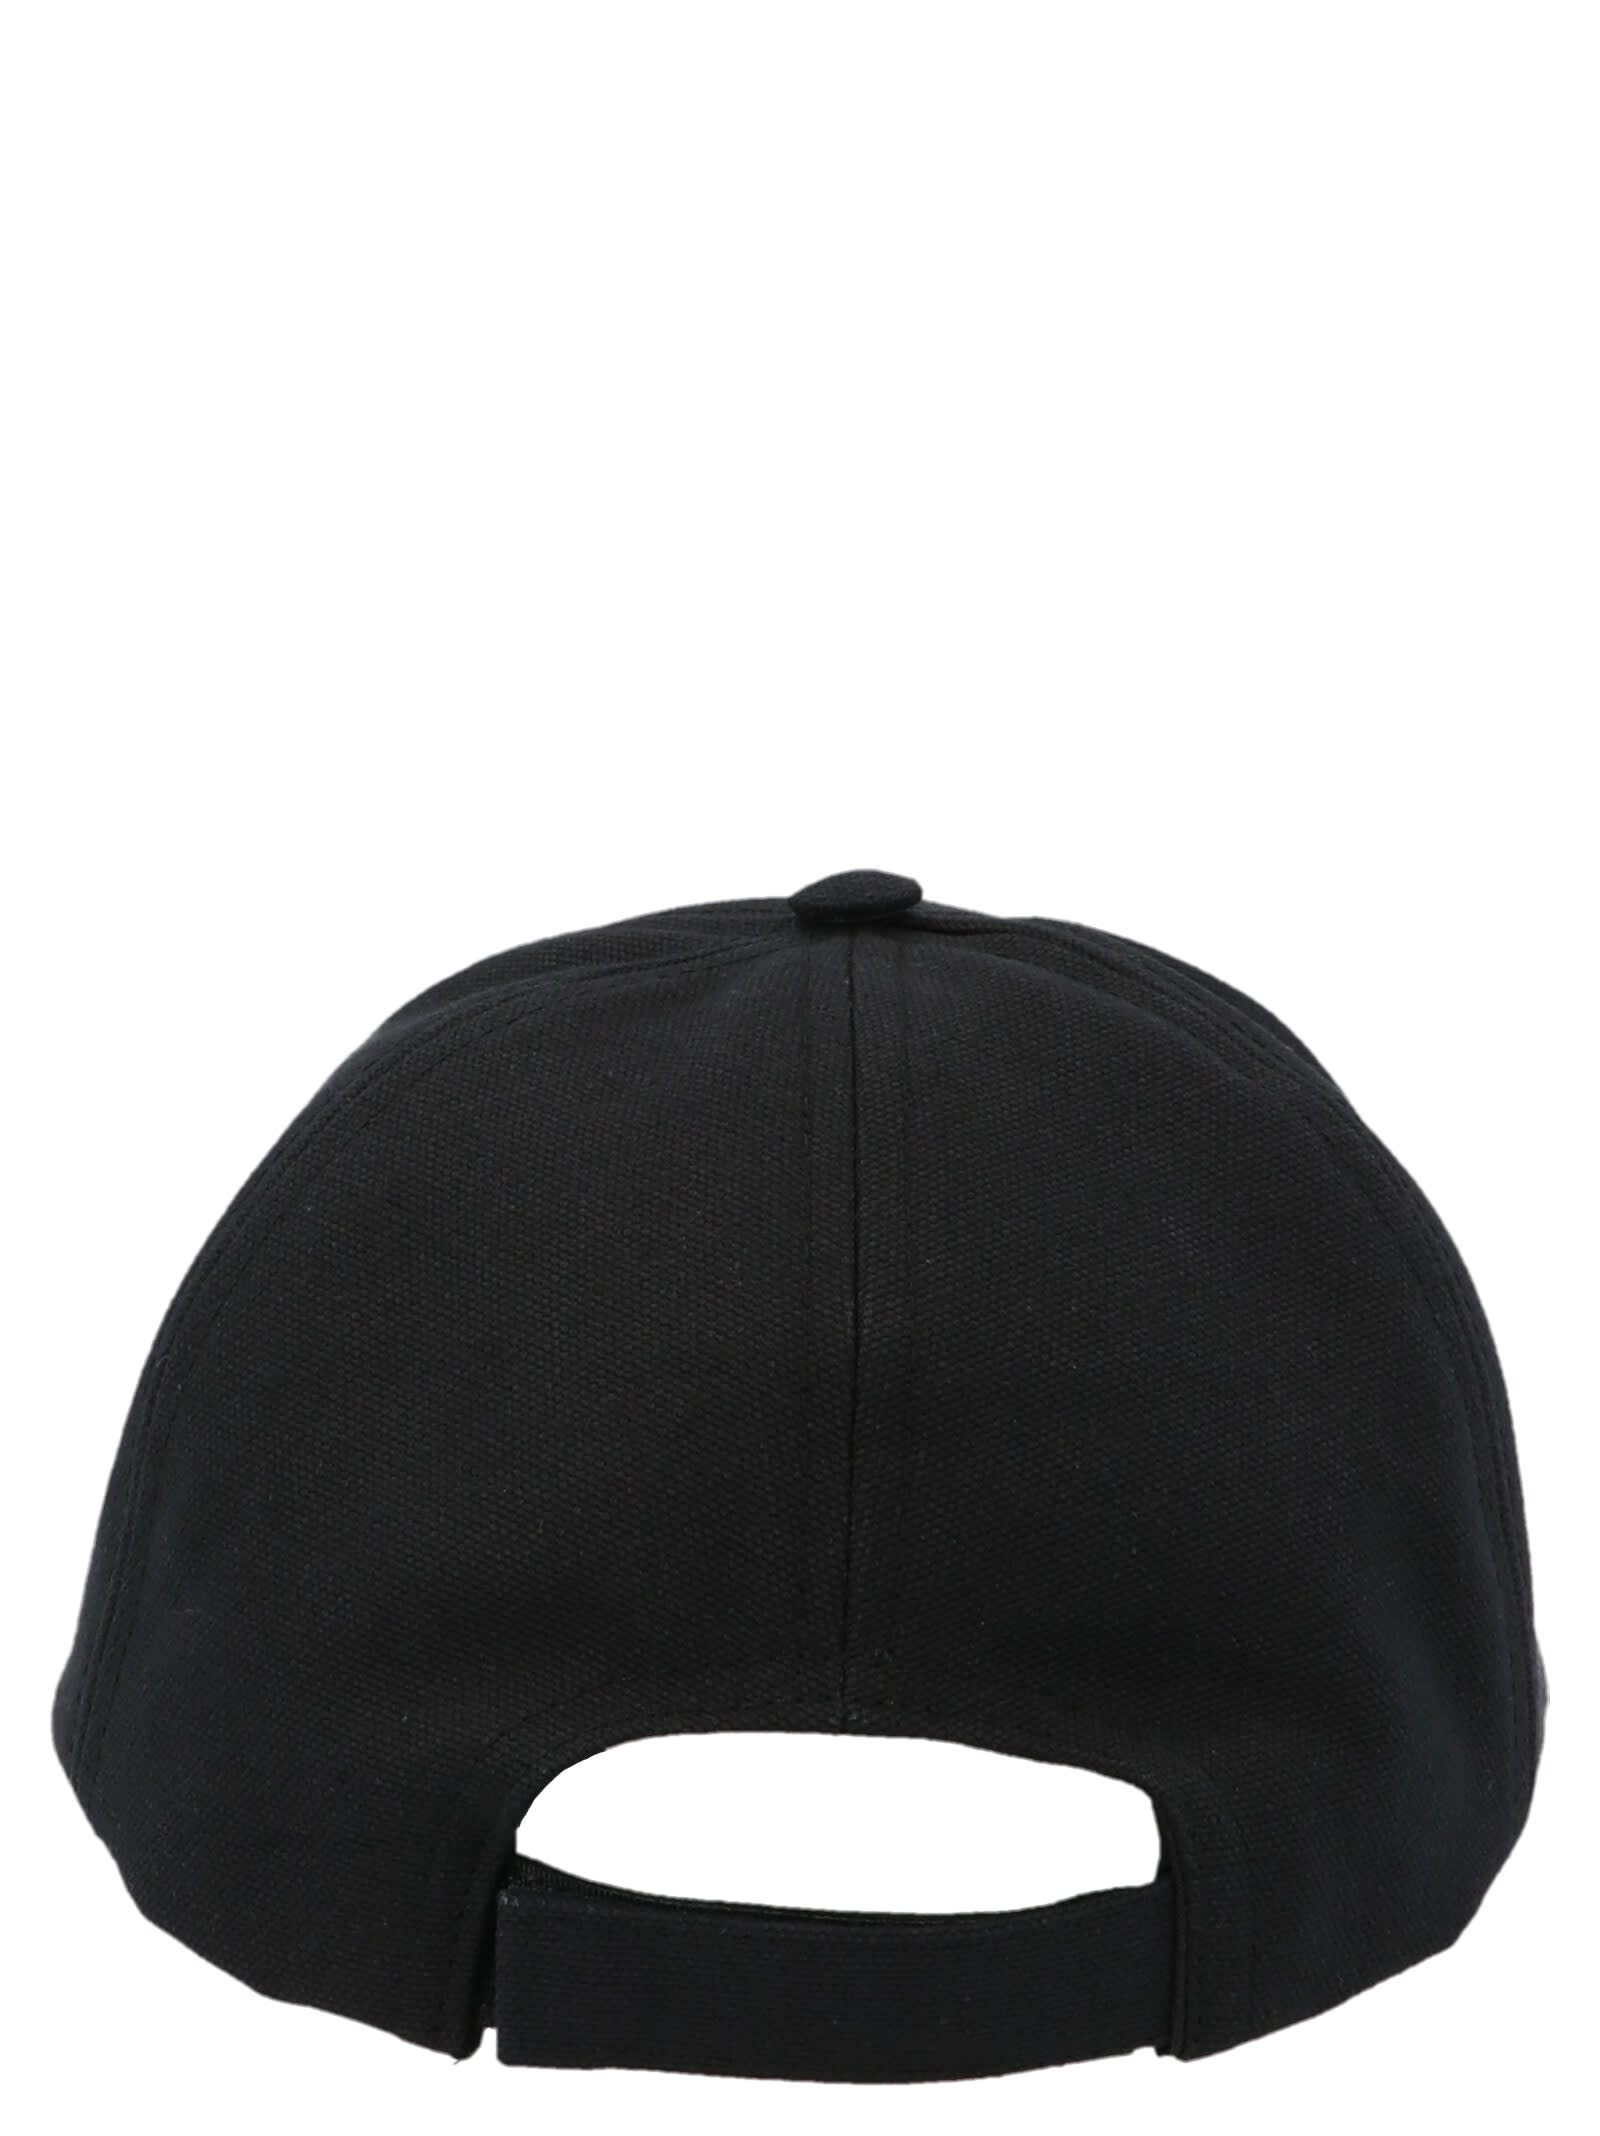 Recommend Cheap Off-white Cap